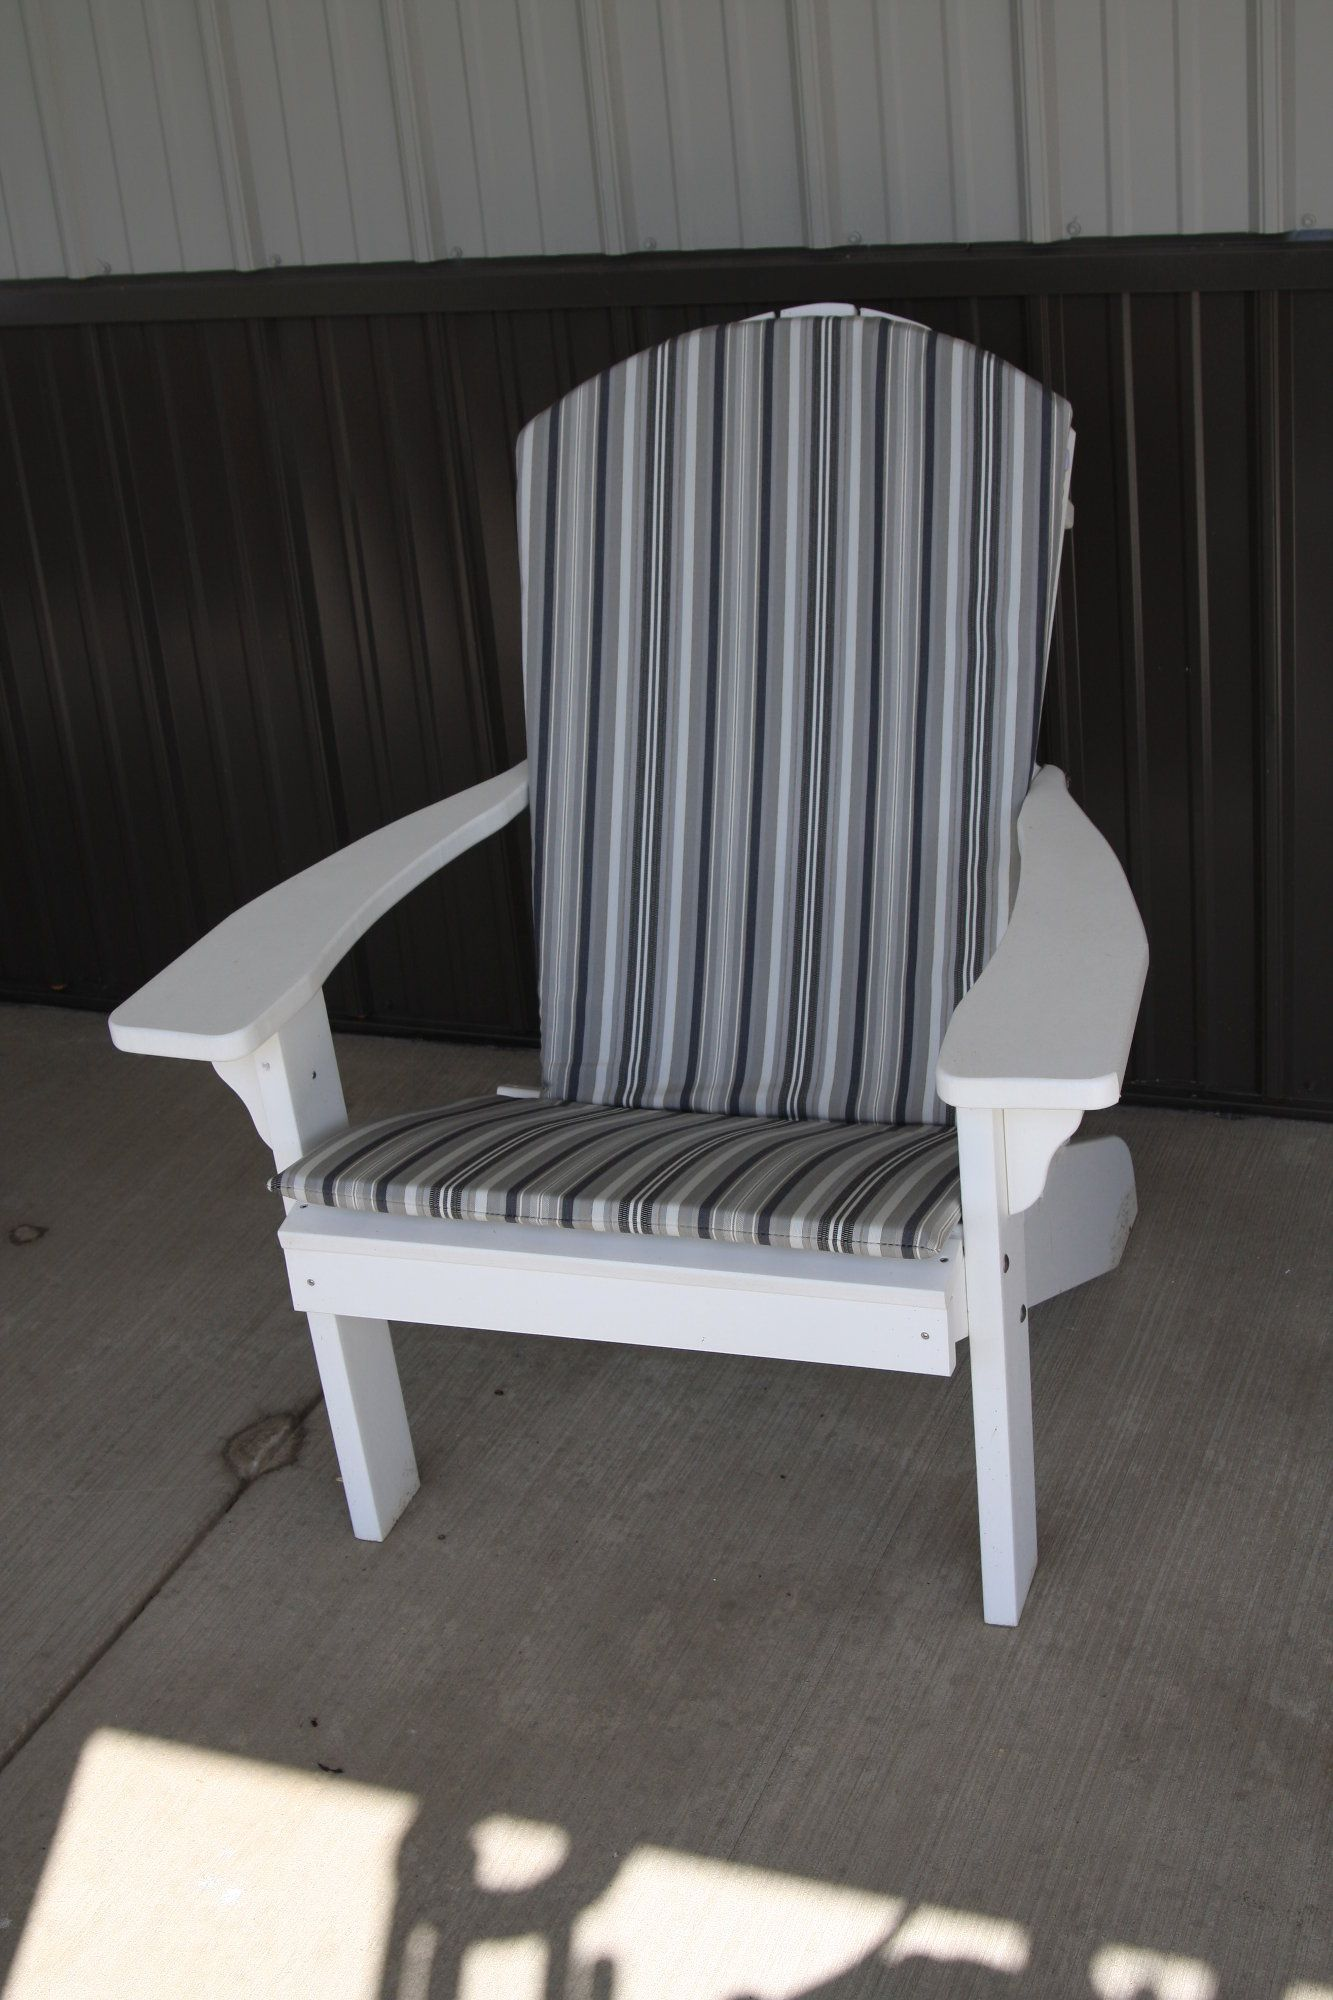 Porch Rocker 1 Inch Thick Seat & Back Cushions Outdoor